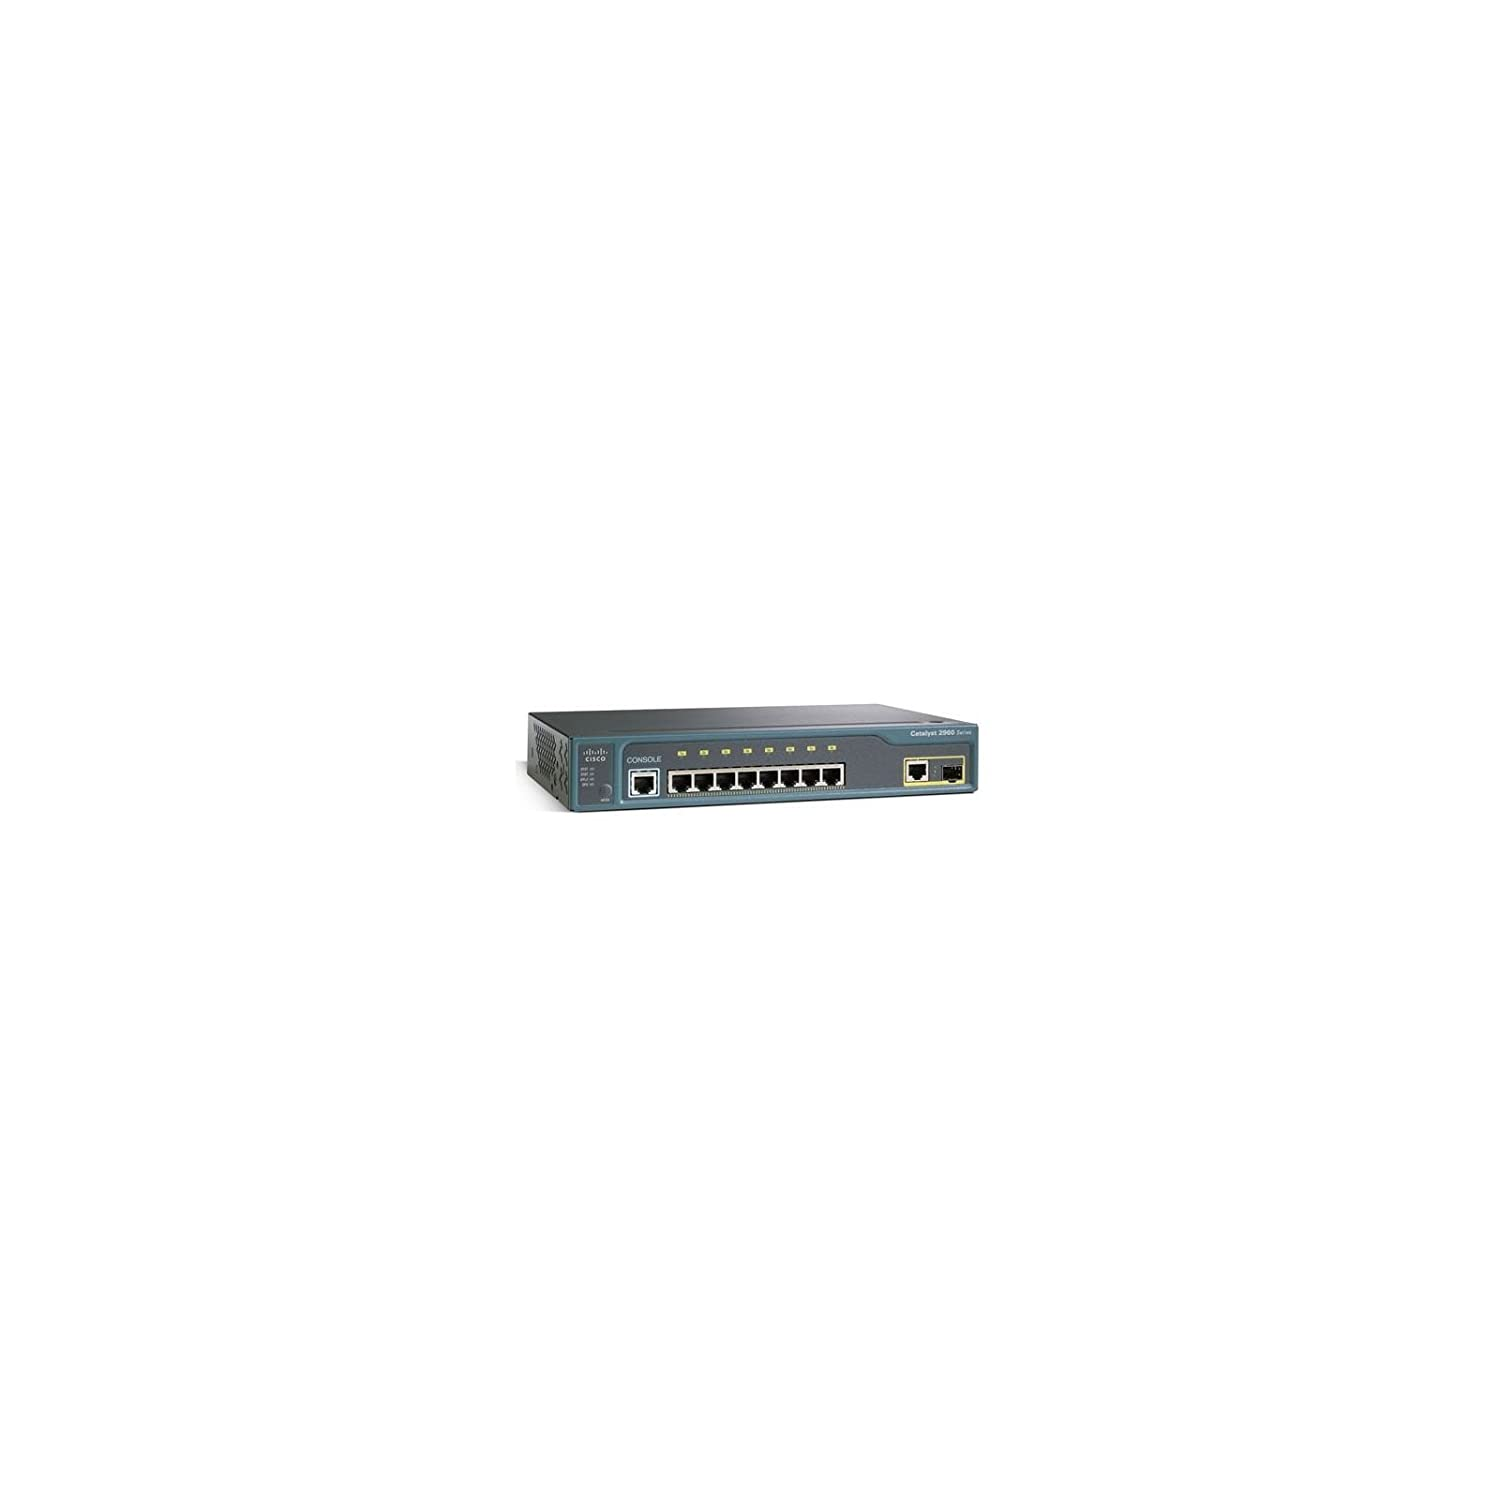 Comparer CISCO CATALYST 29608TC NOIR 8 PORTS